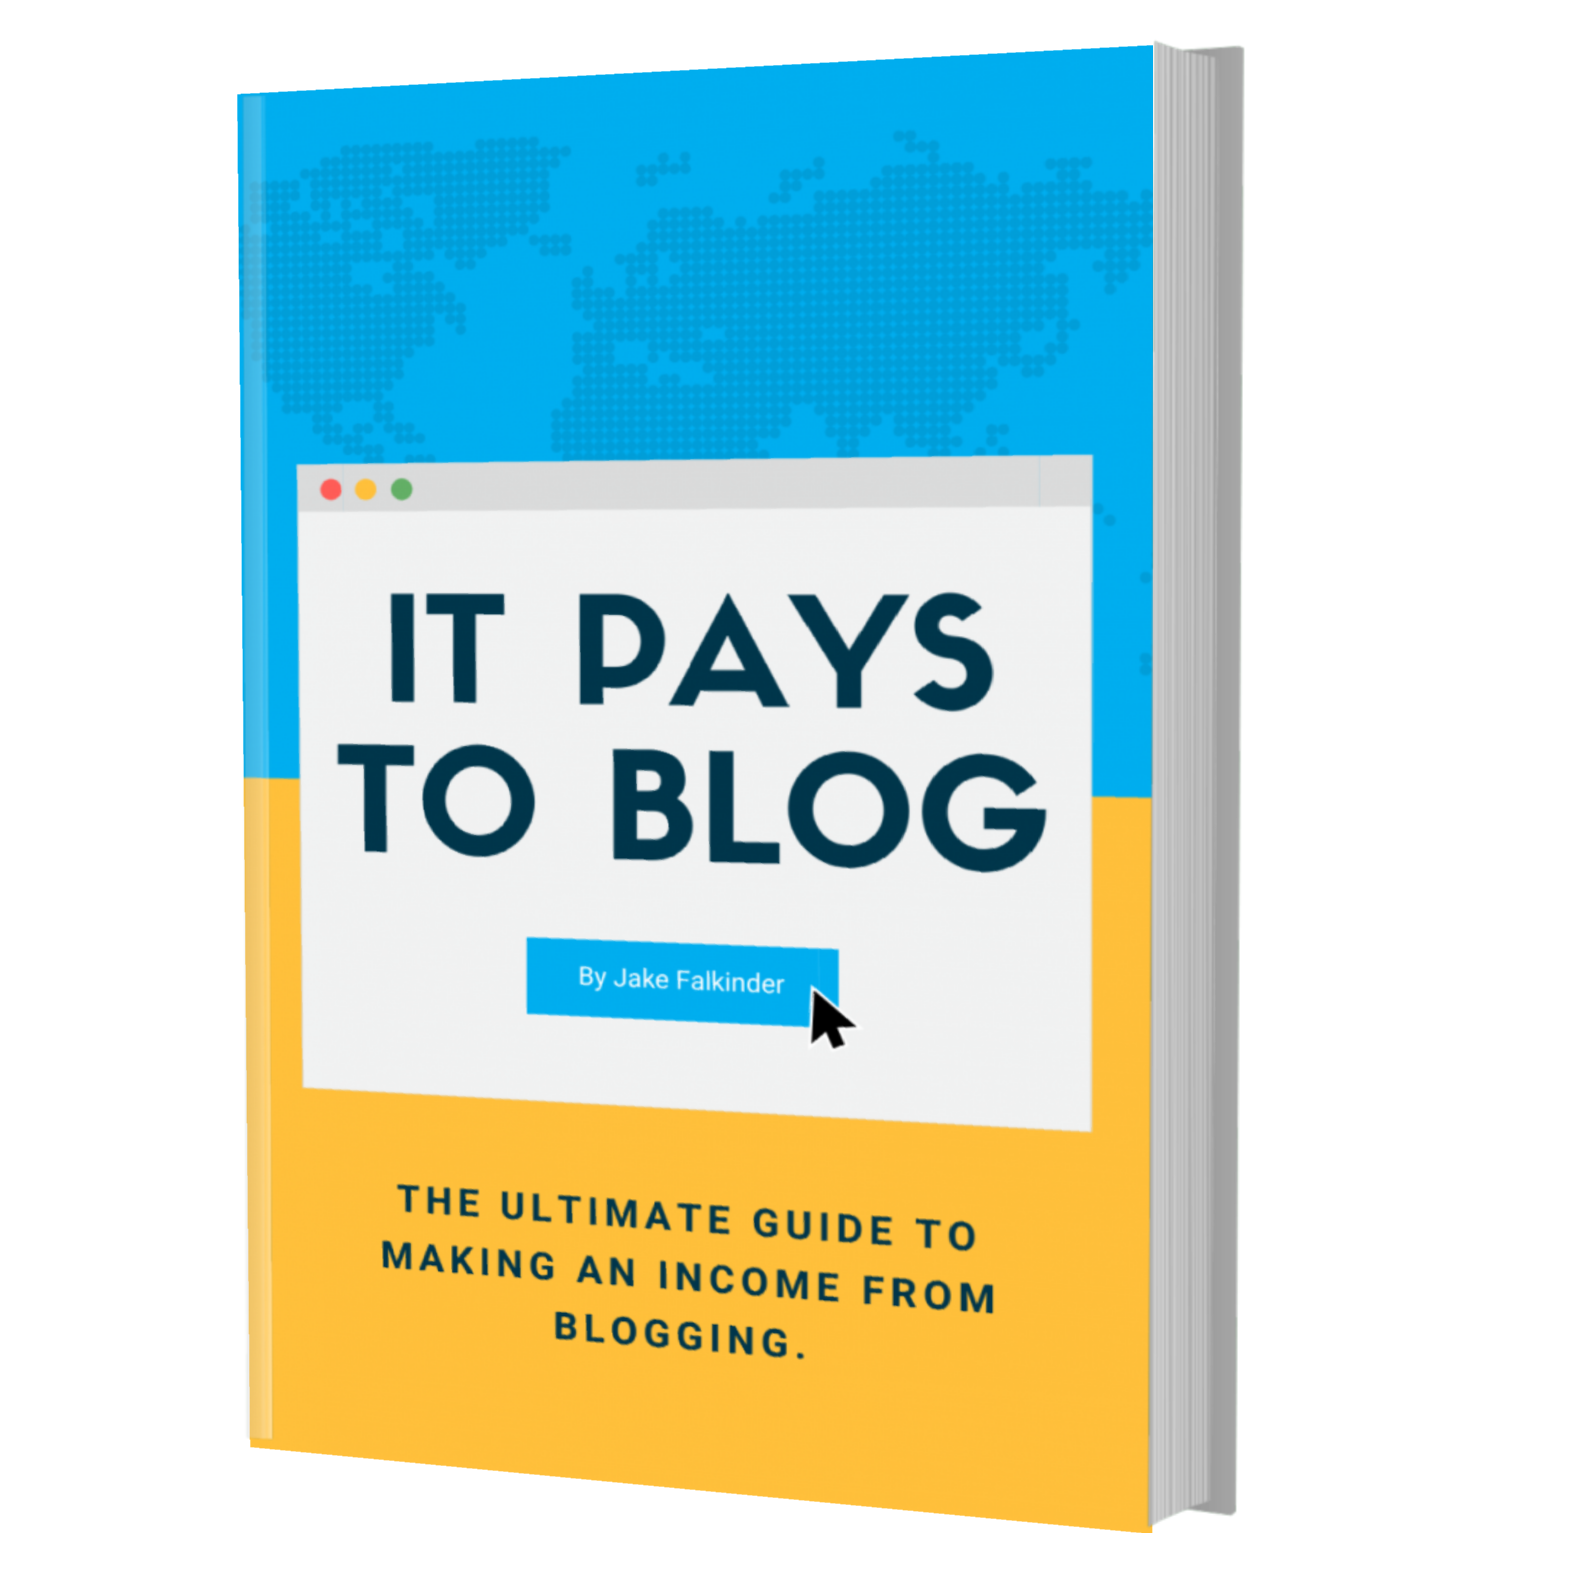 it-pays-to-blog-hardcover-ebook